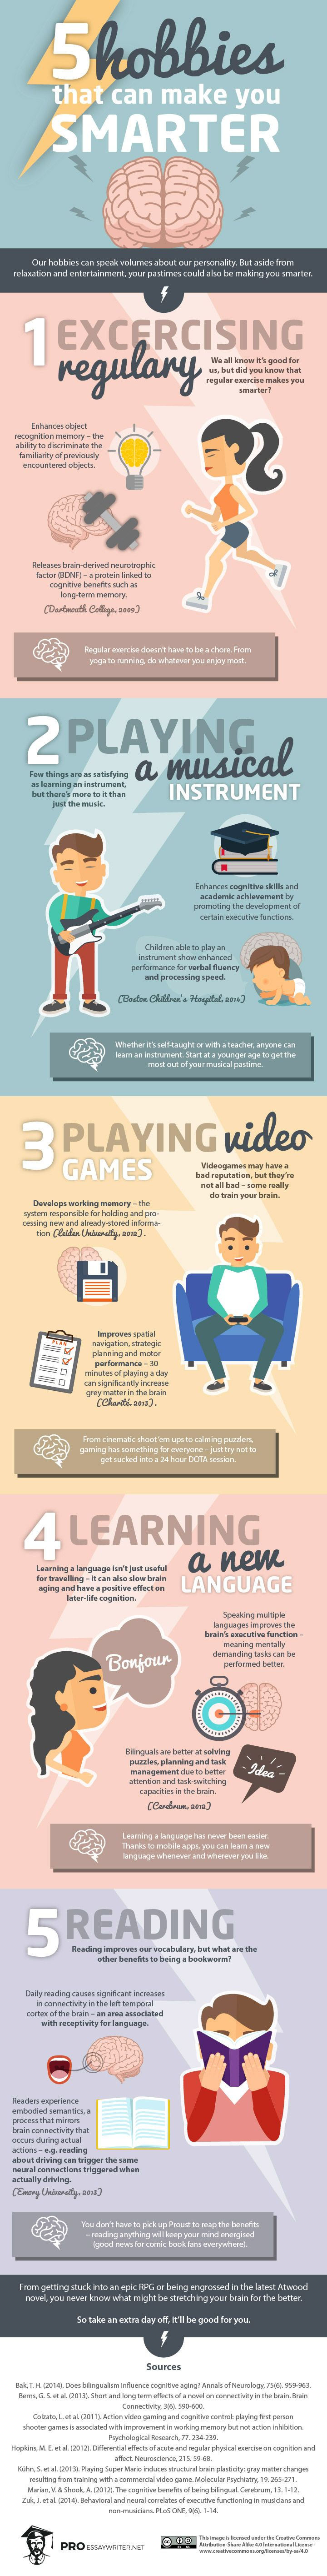 Enjoy your hobbies & become smarter in the process. Exercising regularly, reading and yes video games can help increase your logic skills as well as keep your moods at bay.(Positive psychology & wellbeing)